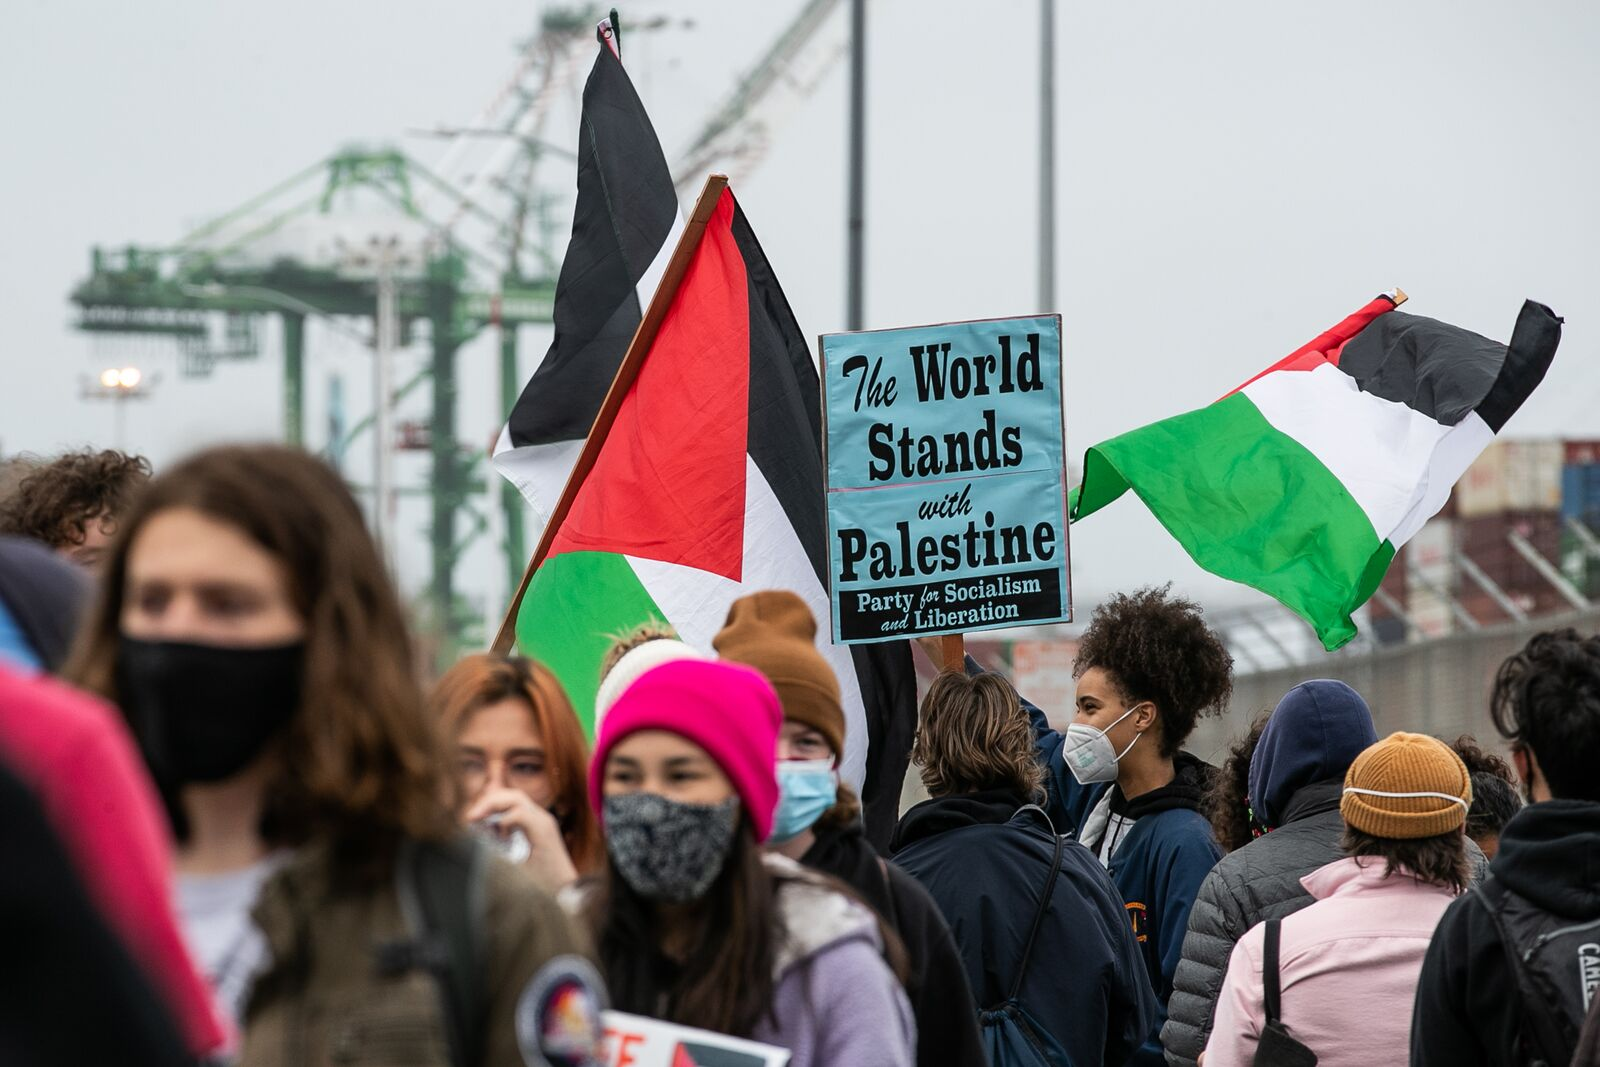 Pro-Palestine ship blockade is the latest chapter in the Port of Oakland's activist history